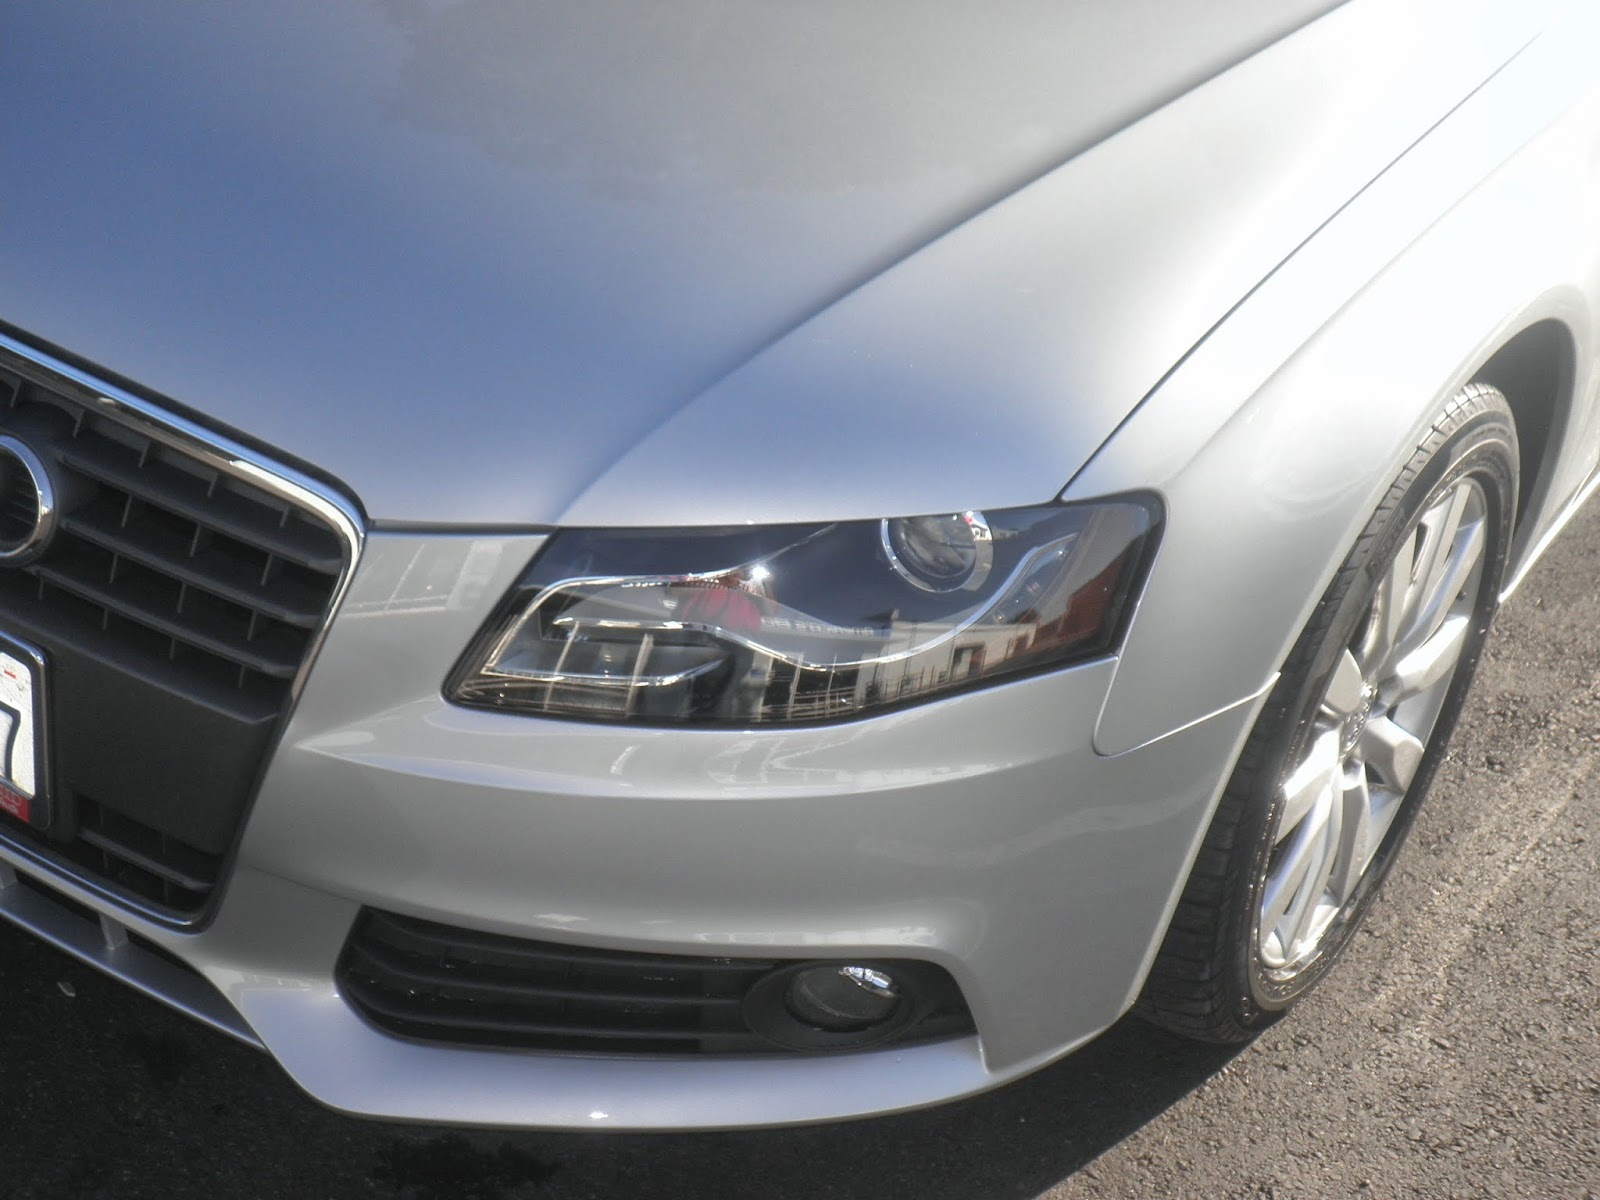 Audi A4 after collision repair at Almost Everything Auto Body